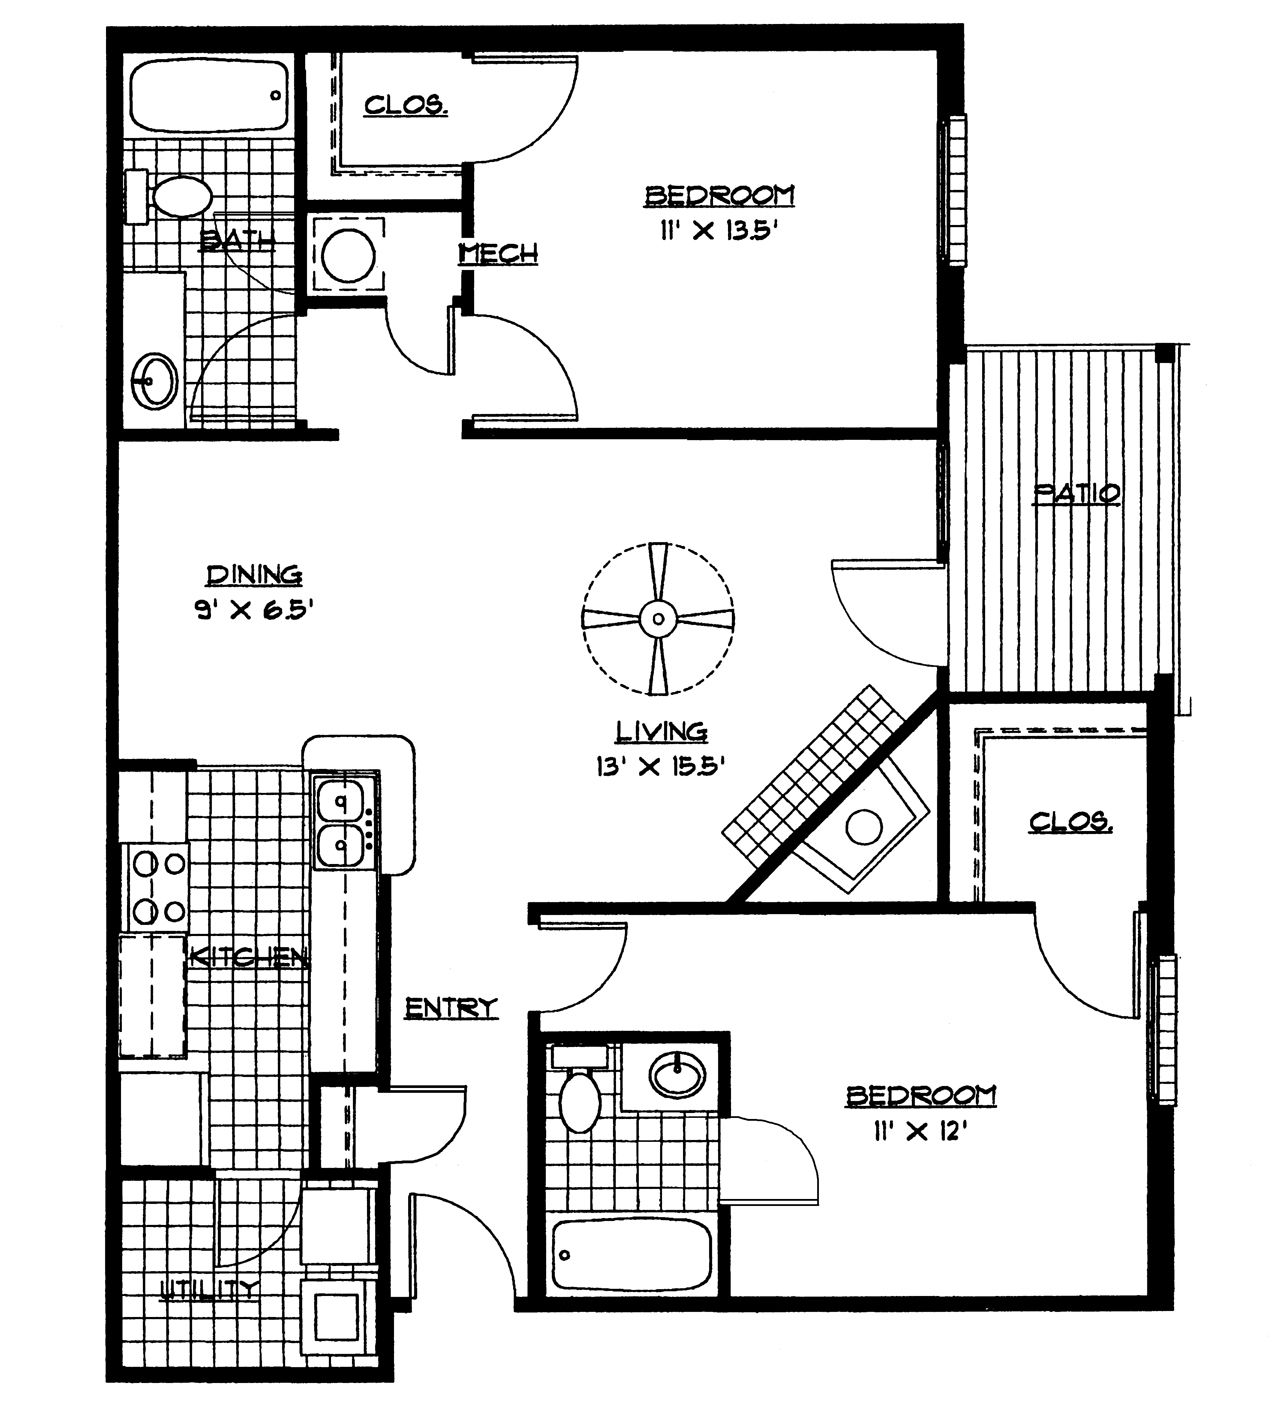 Small house floor plans 2 bedrooms bedroom floor plan download printable pdf tiny houses - House plans bedroom ...